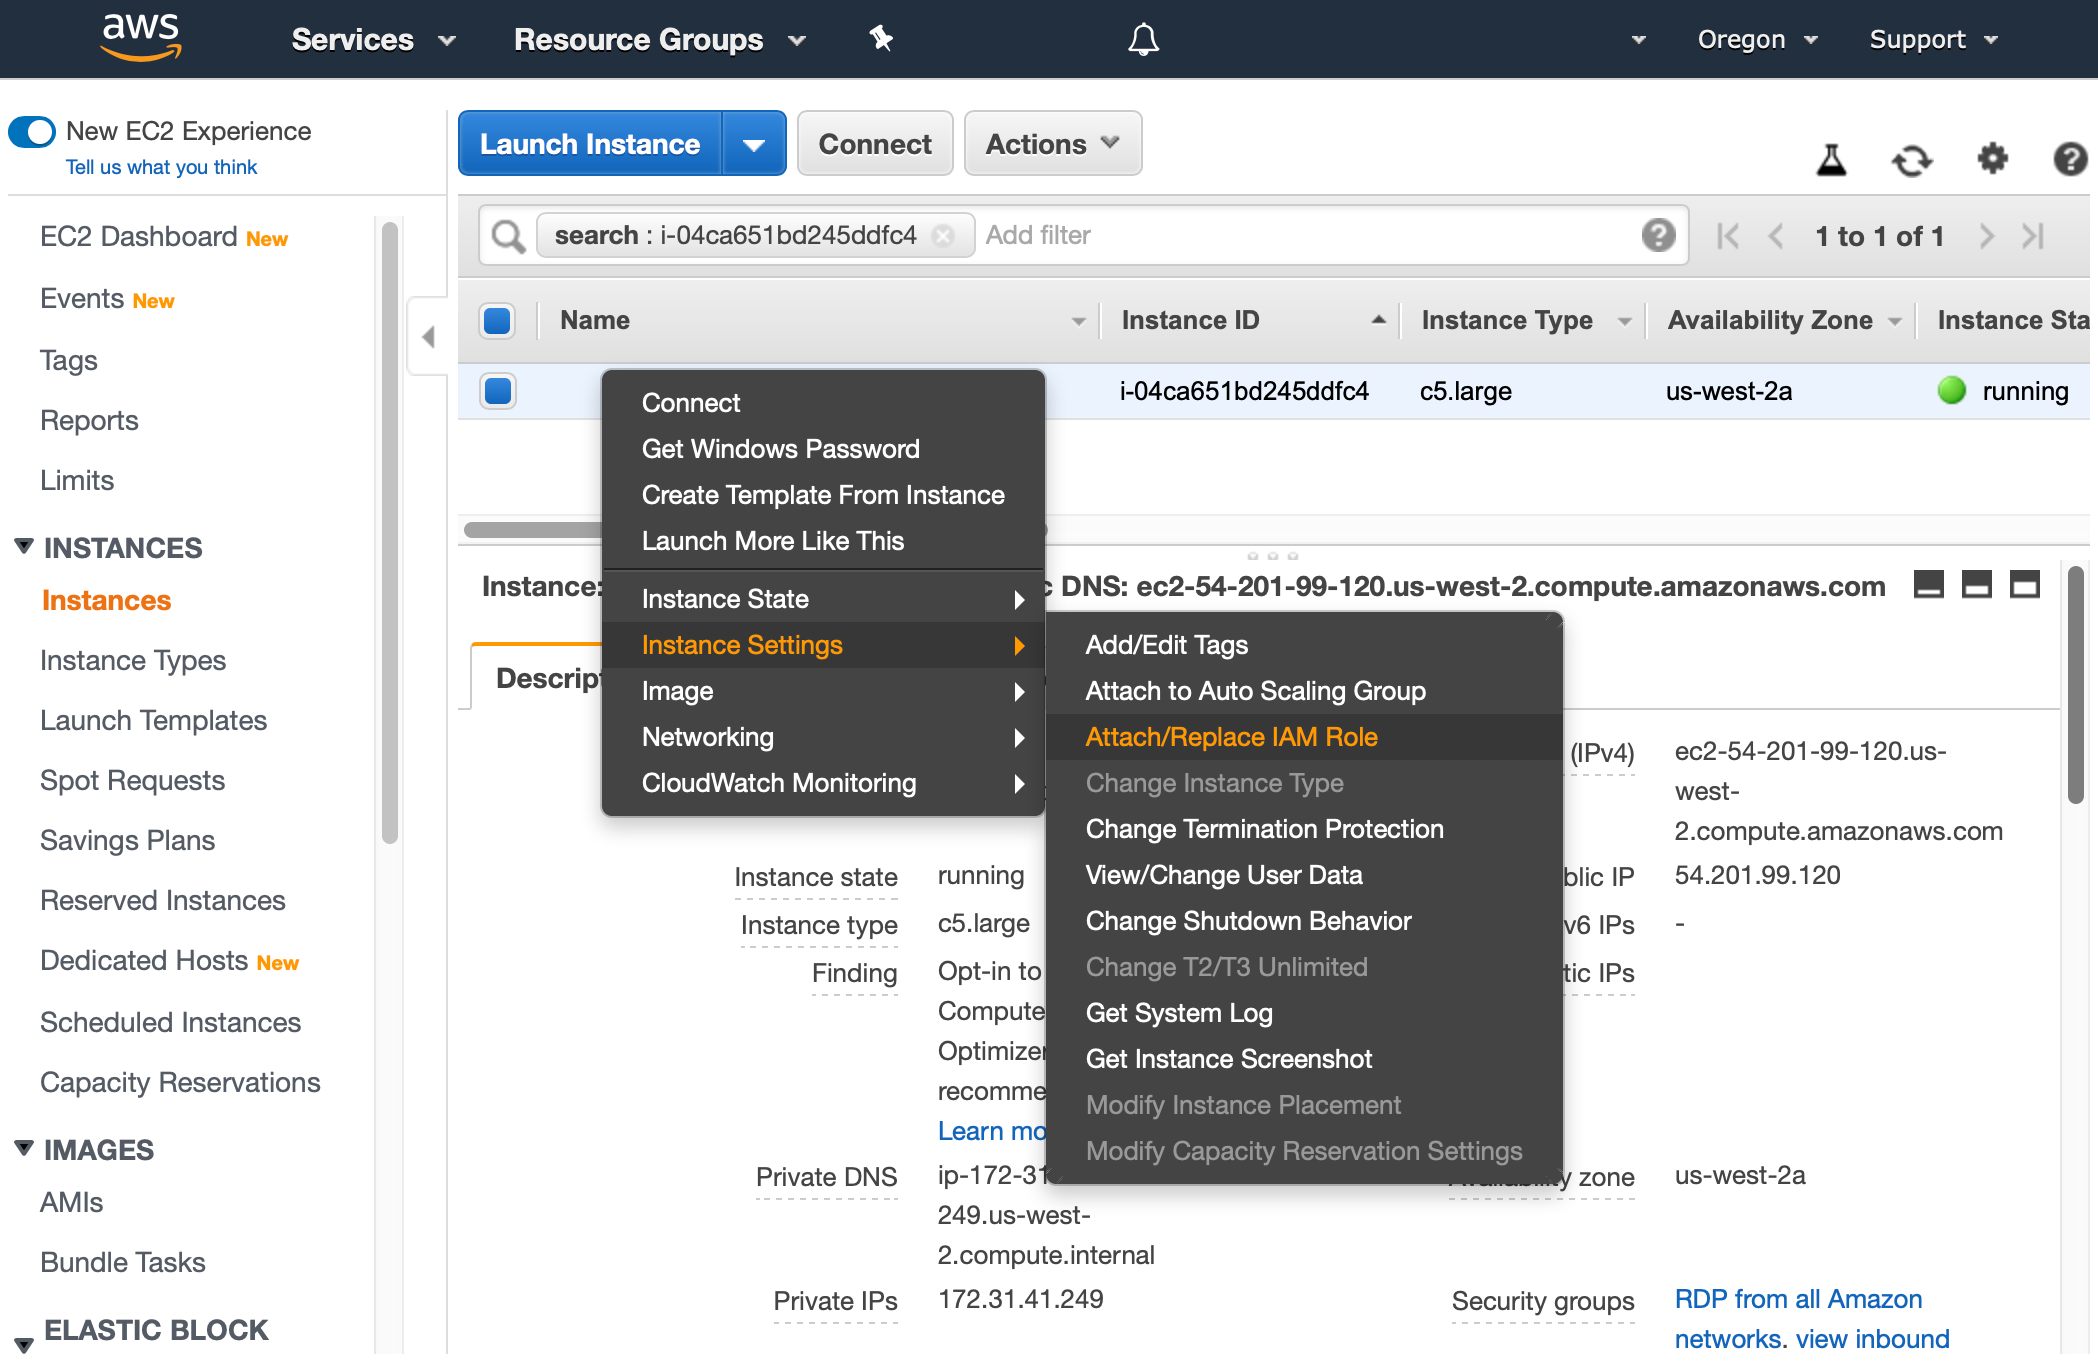 AWS Management Console shows the EC2 service and Instances view. Context menu for one EC2 instance is opened and Attach/Replace IAM Role is selected